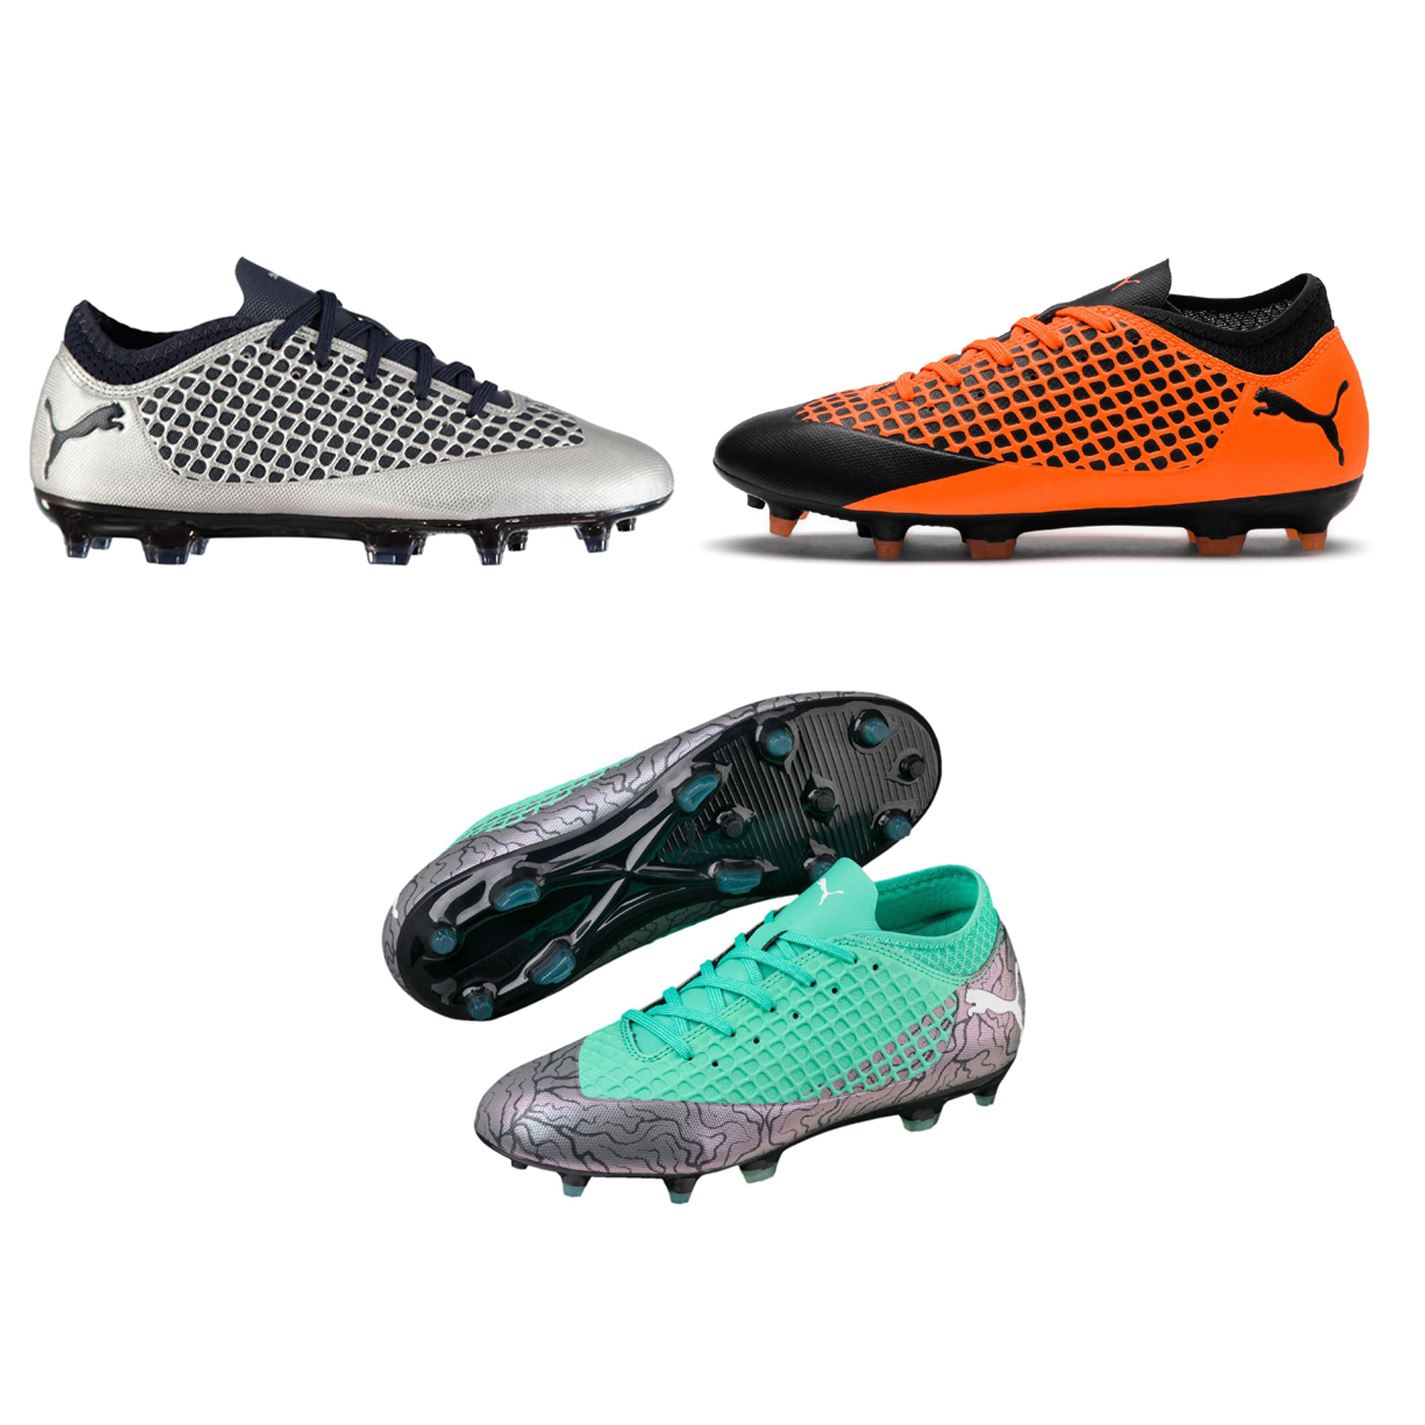 ... Puma Future 2.4 FG Firm Ground Football Boots Childs Soccer Shoes Cleats  ... c2e135c24